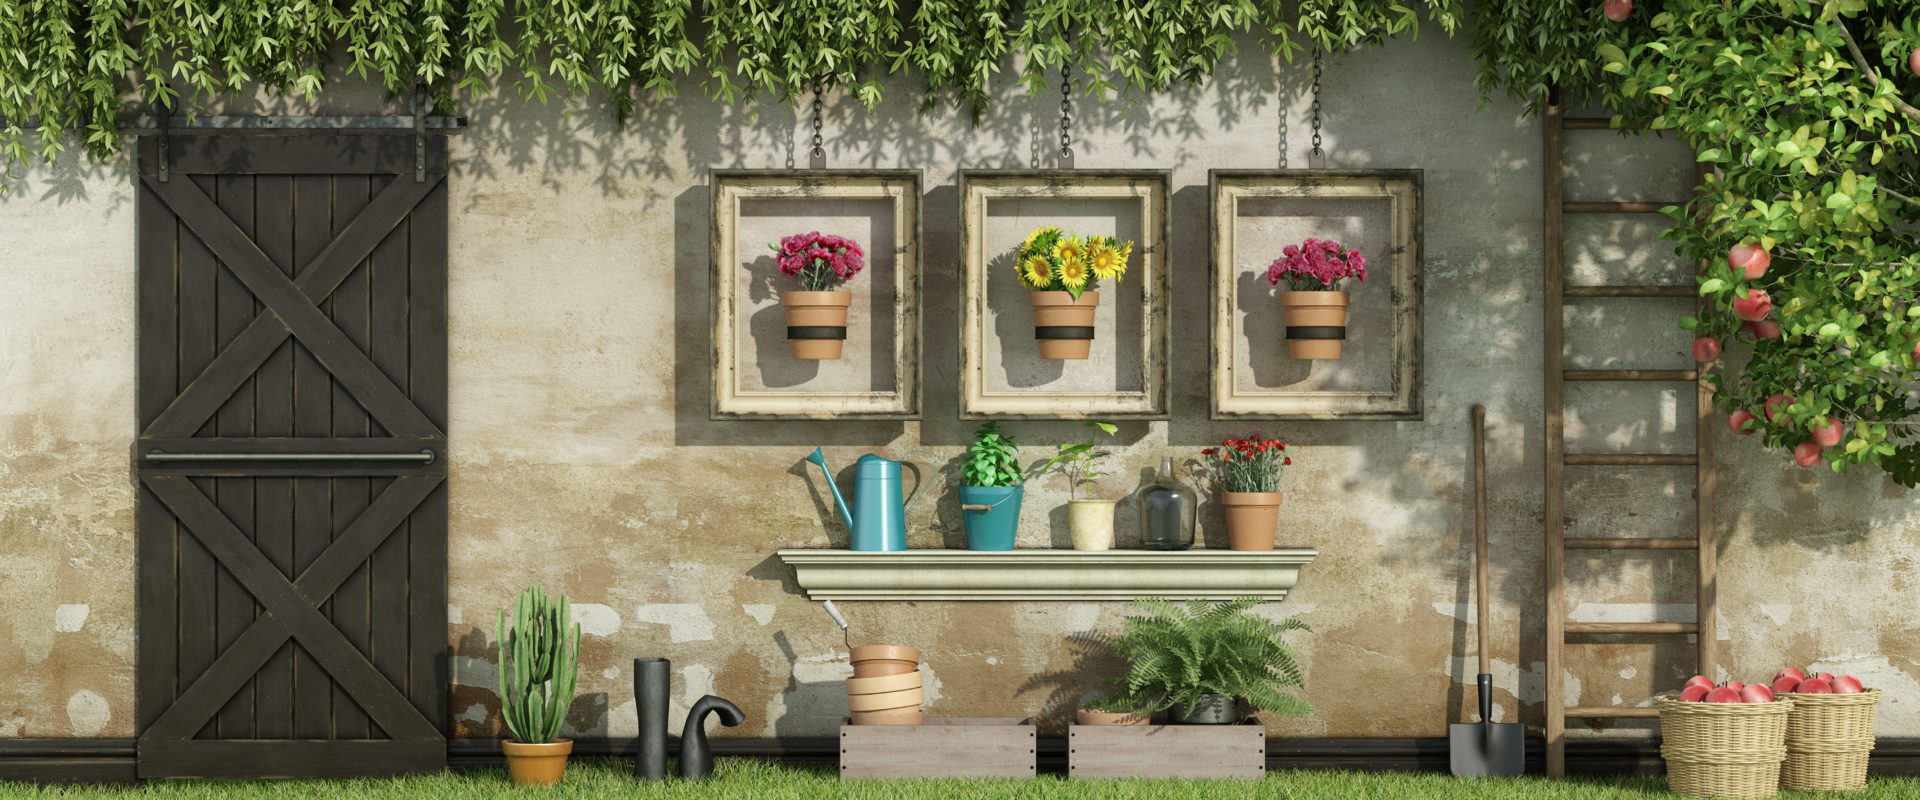 A Well Kept Garden – Can add 20 per cent Value and Help Sell Your Home!